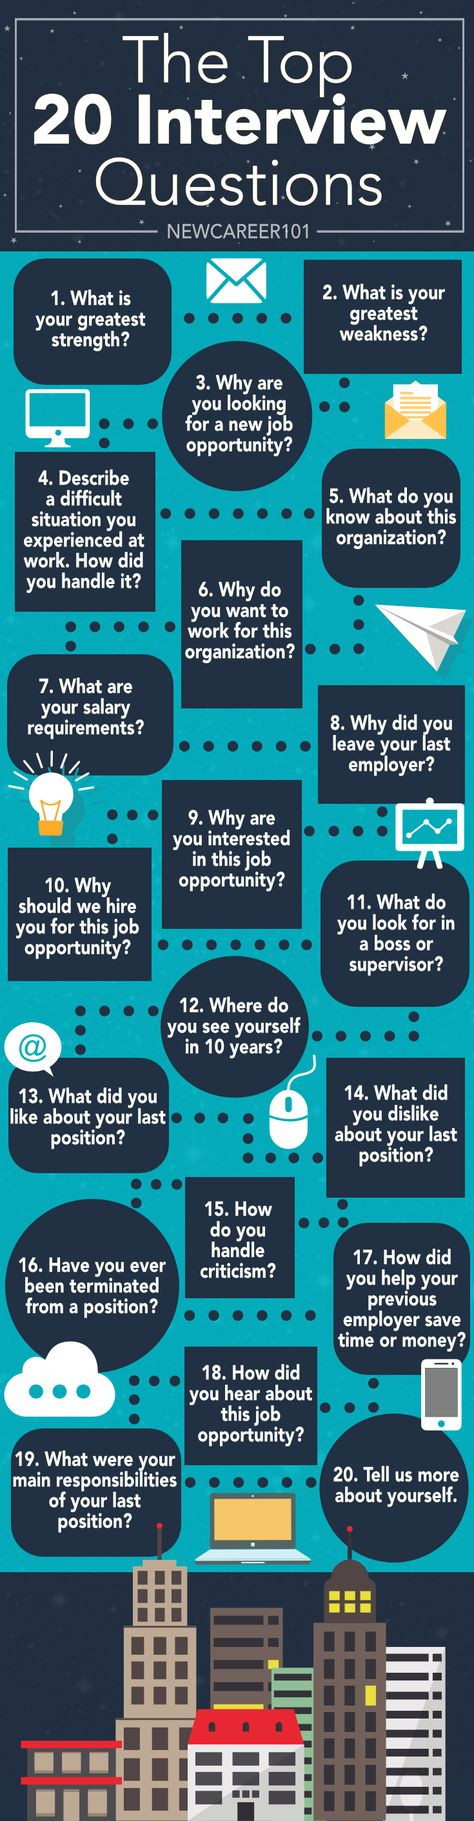 104 Best Job Interview Tips Images On Pinterest | Job Interviews, Job  Interview Tips And Office Workspace